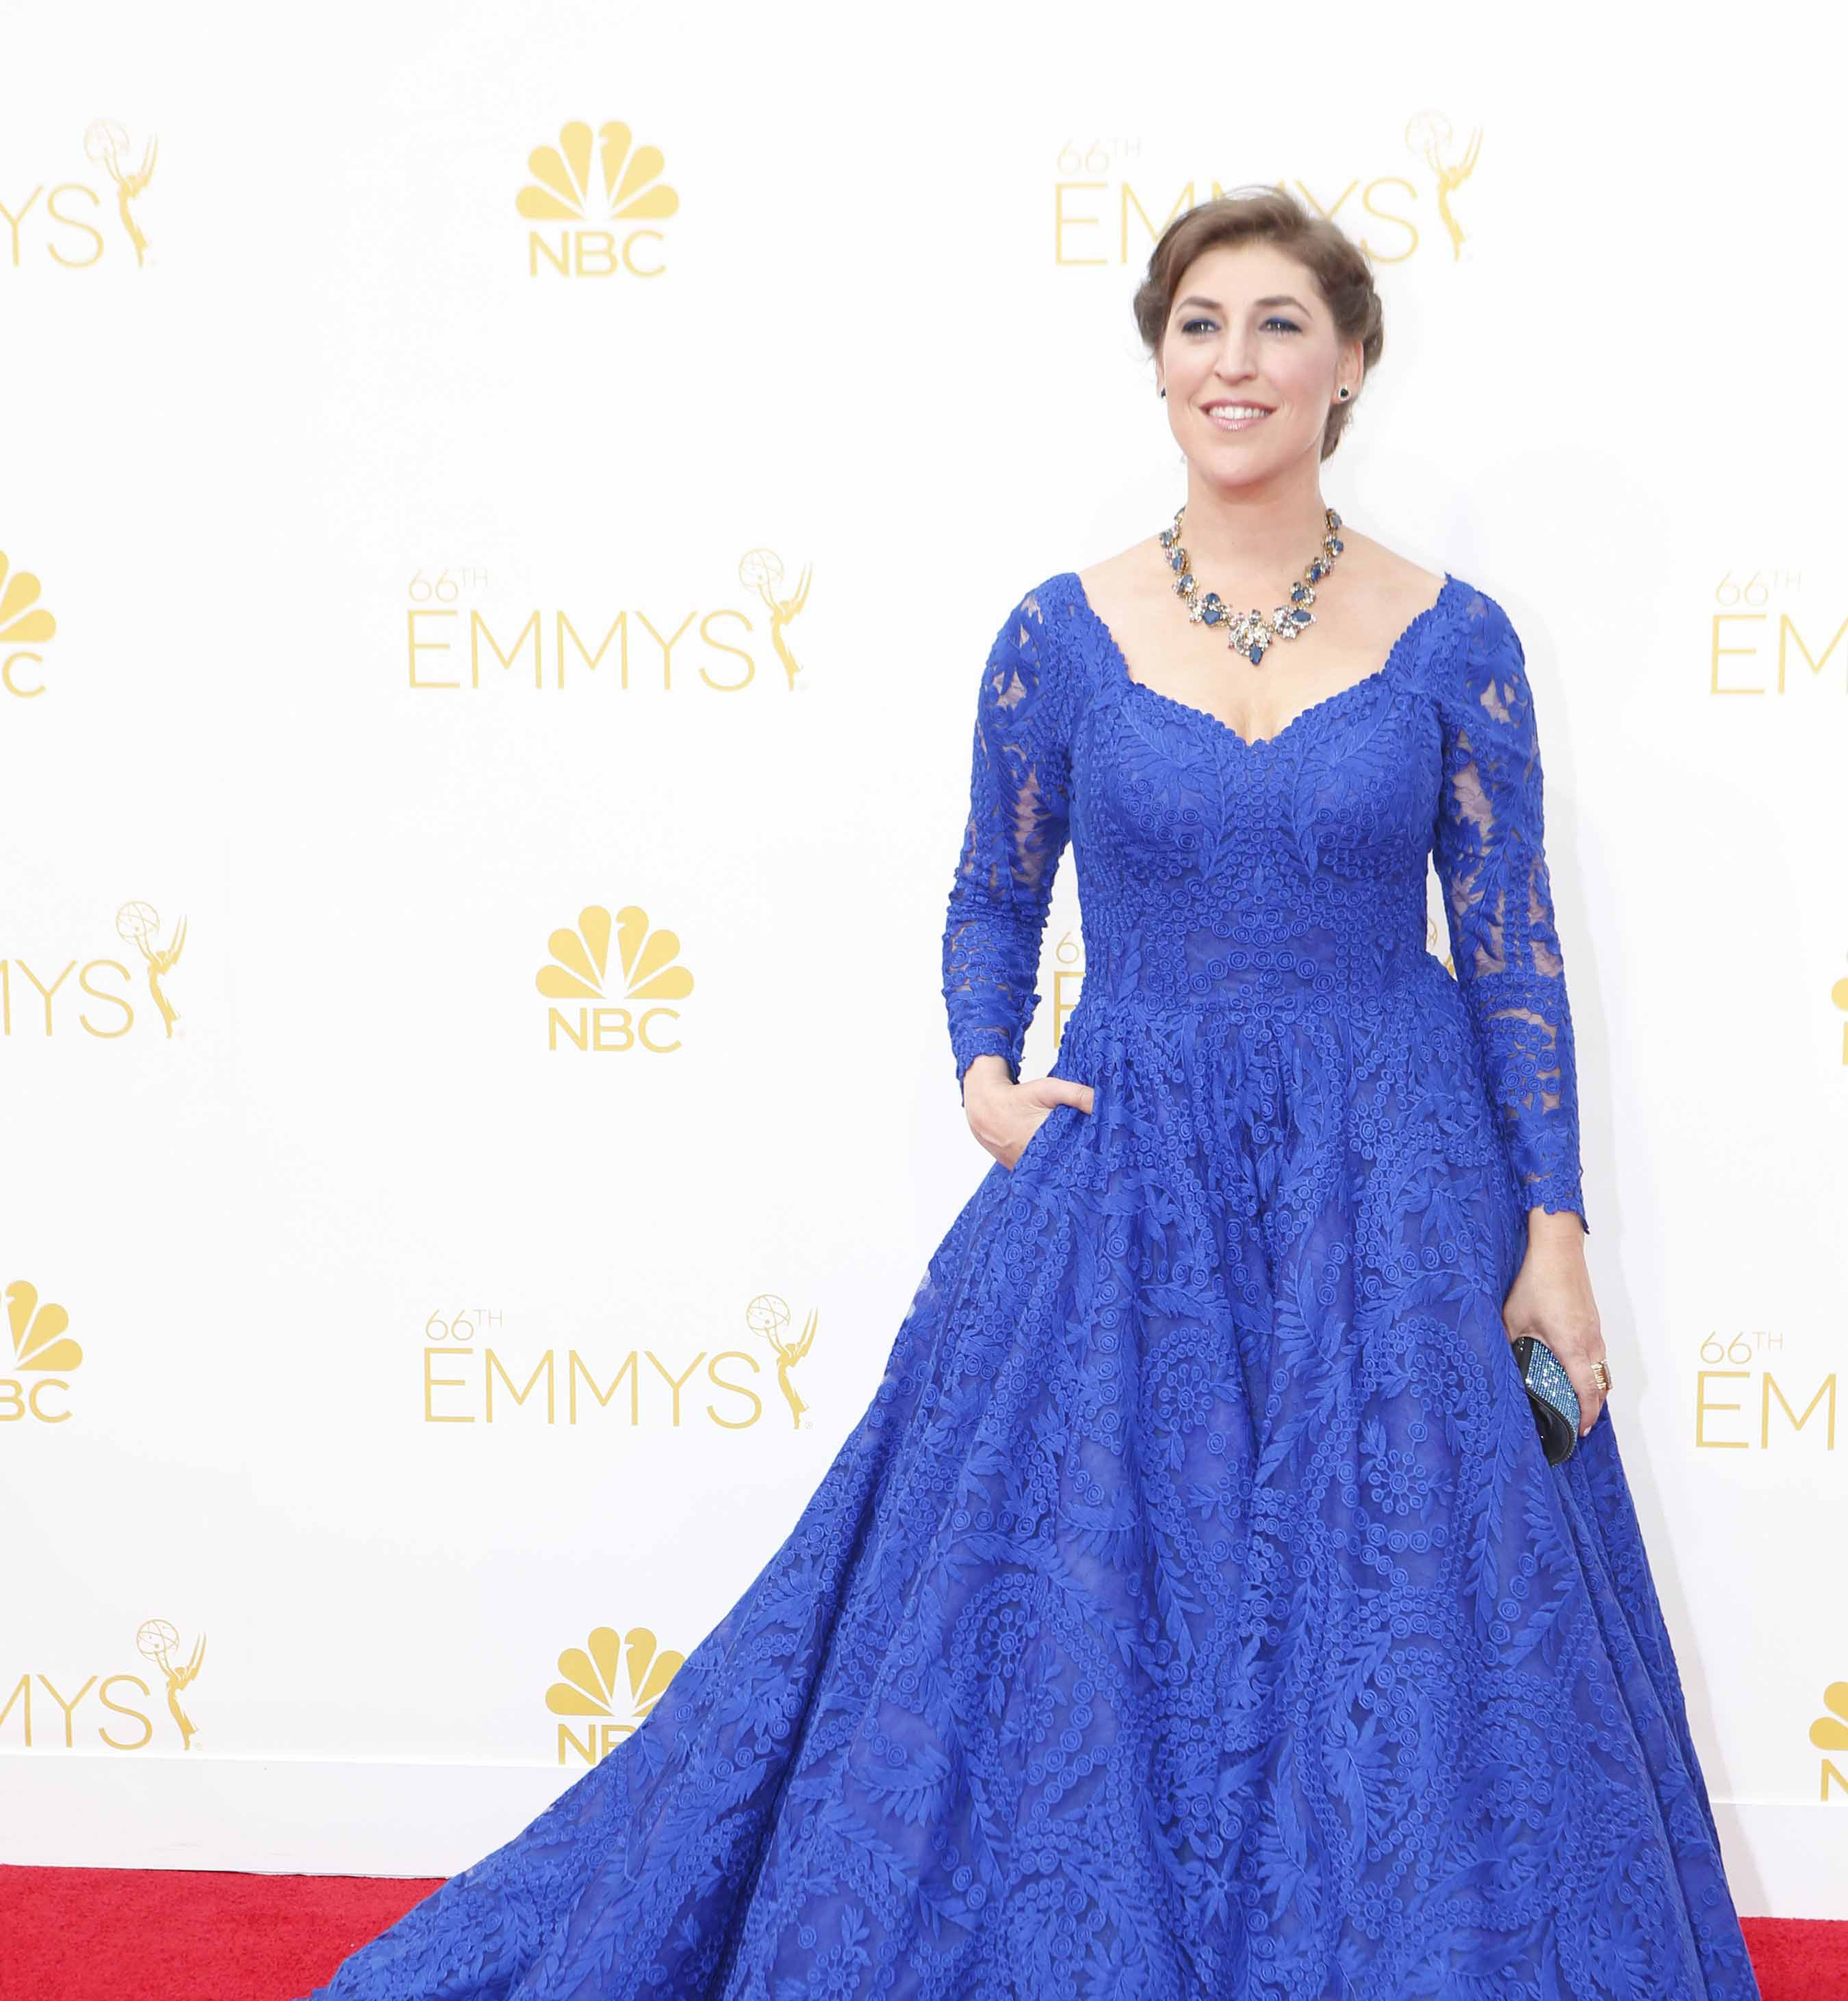 Mayim Bialik, who spoke in the GBPAC on April 11, has been nominated for four Emmys, though President Ruud mistakenly announced she had been nominated for three. Bialik later corrected him in good humor